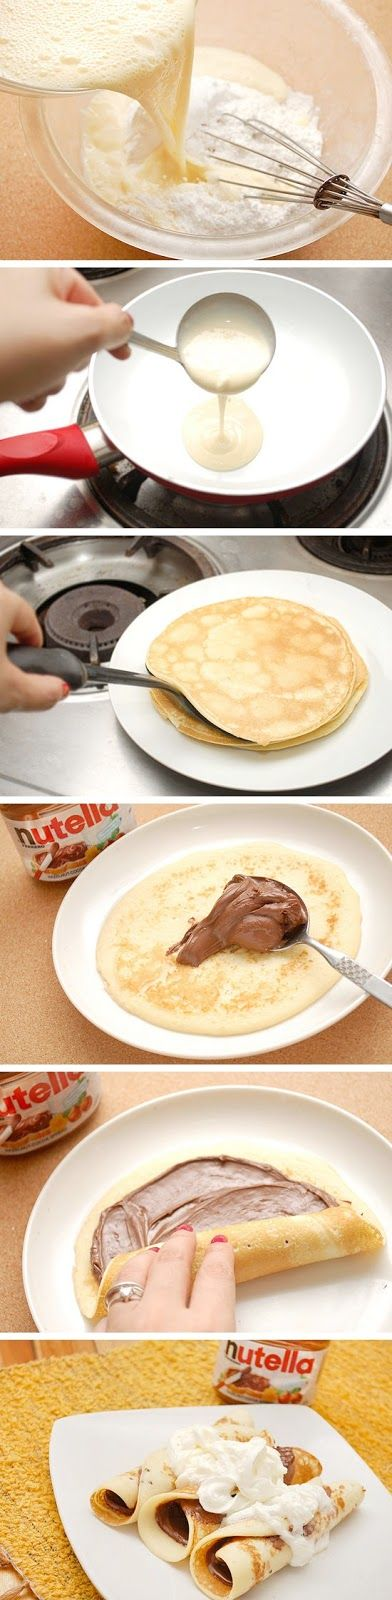 Nutella Crepes Supreme